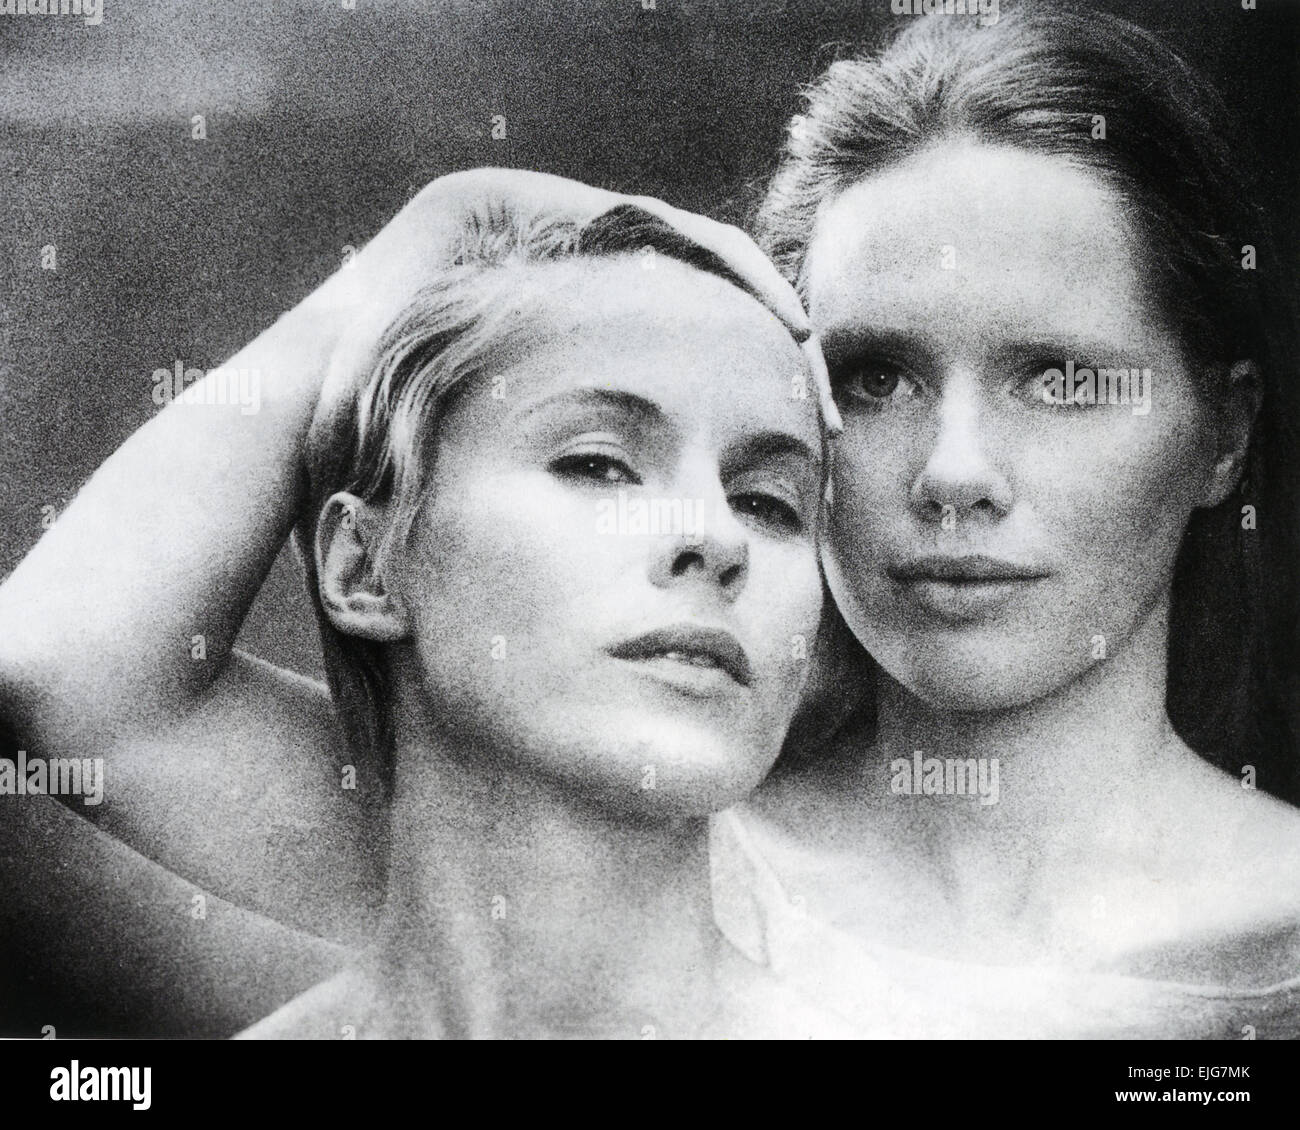 bibi andersson photos